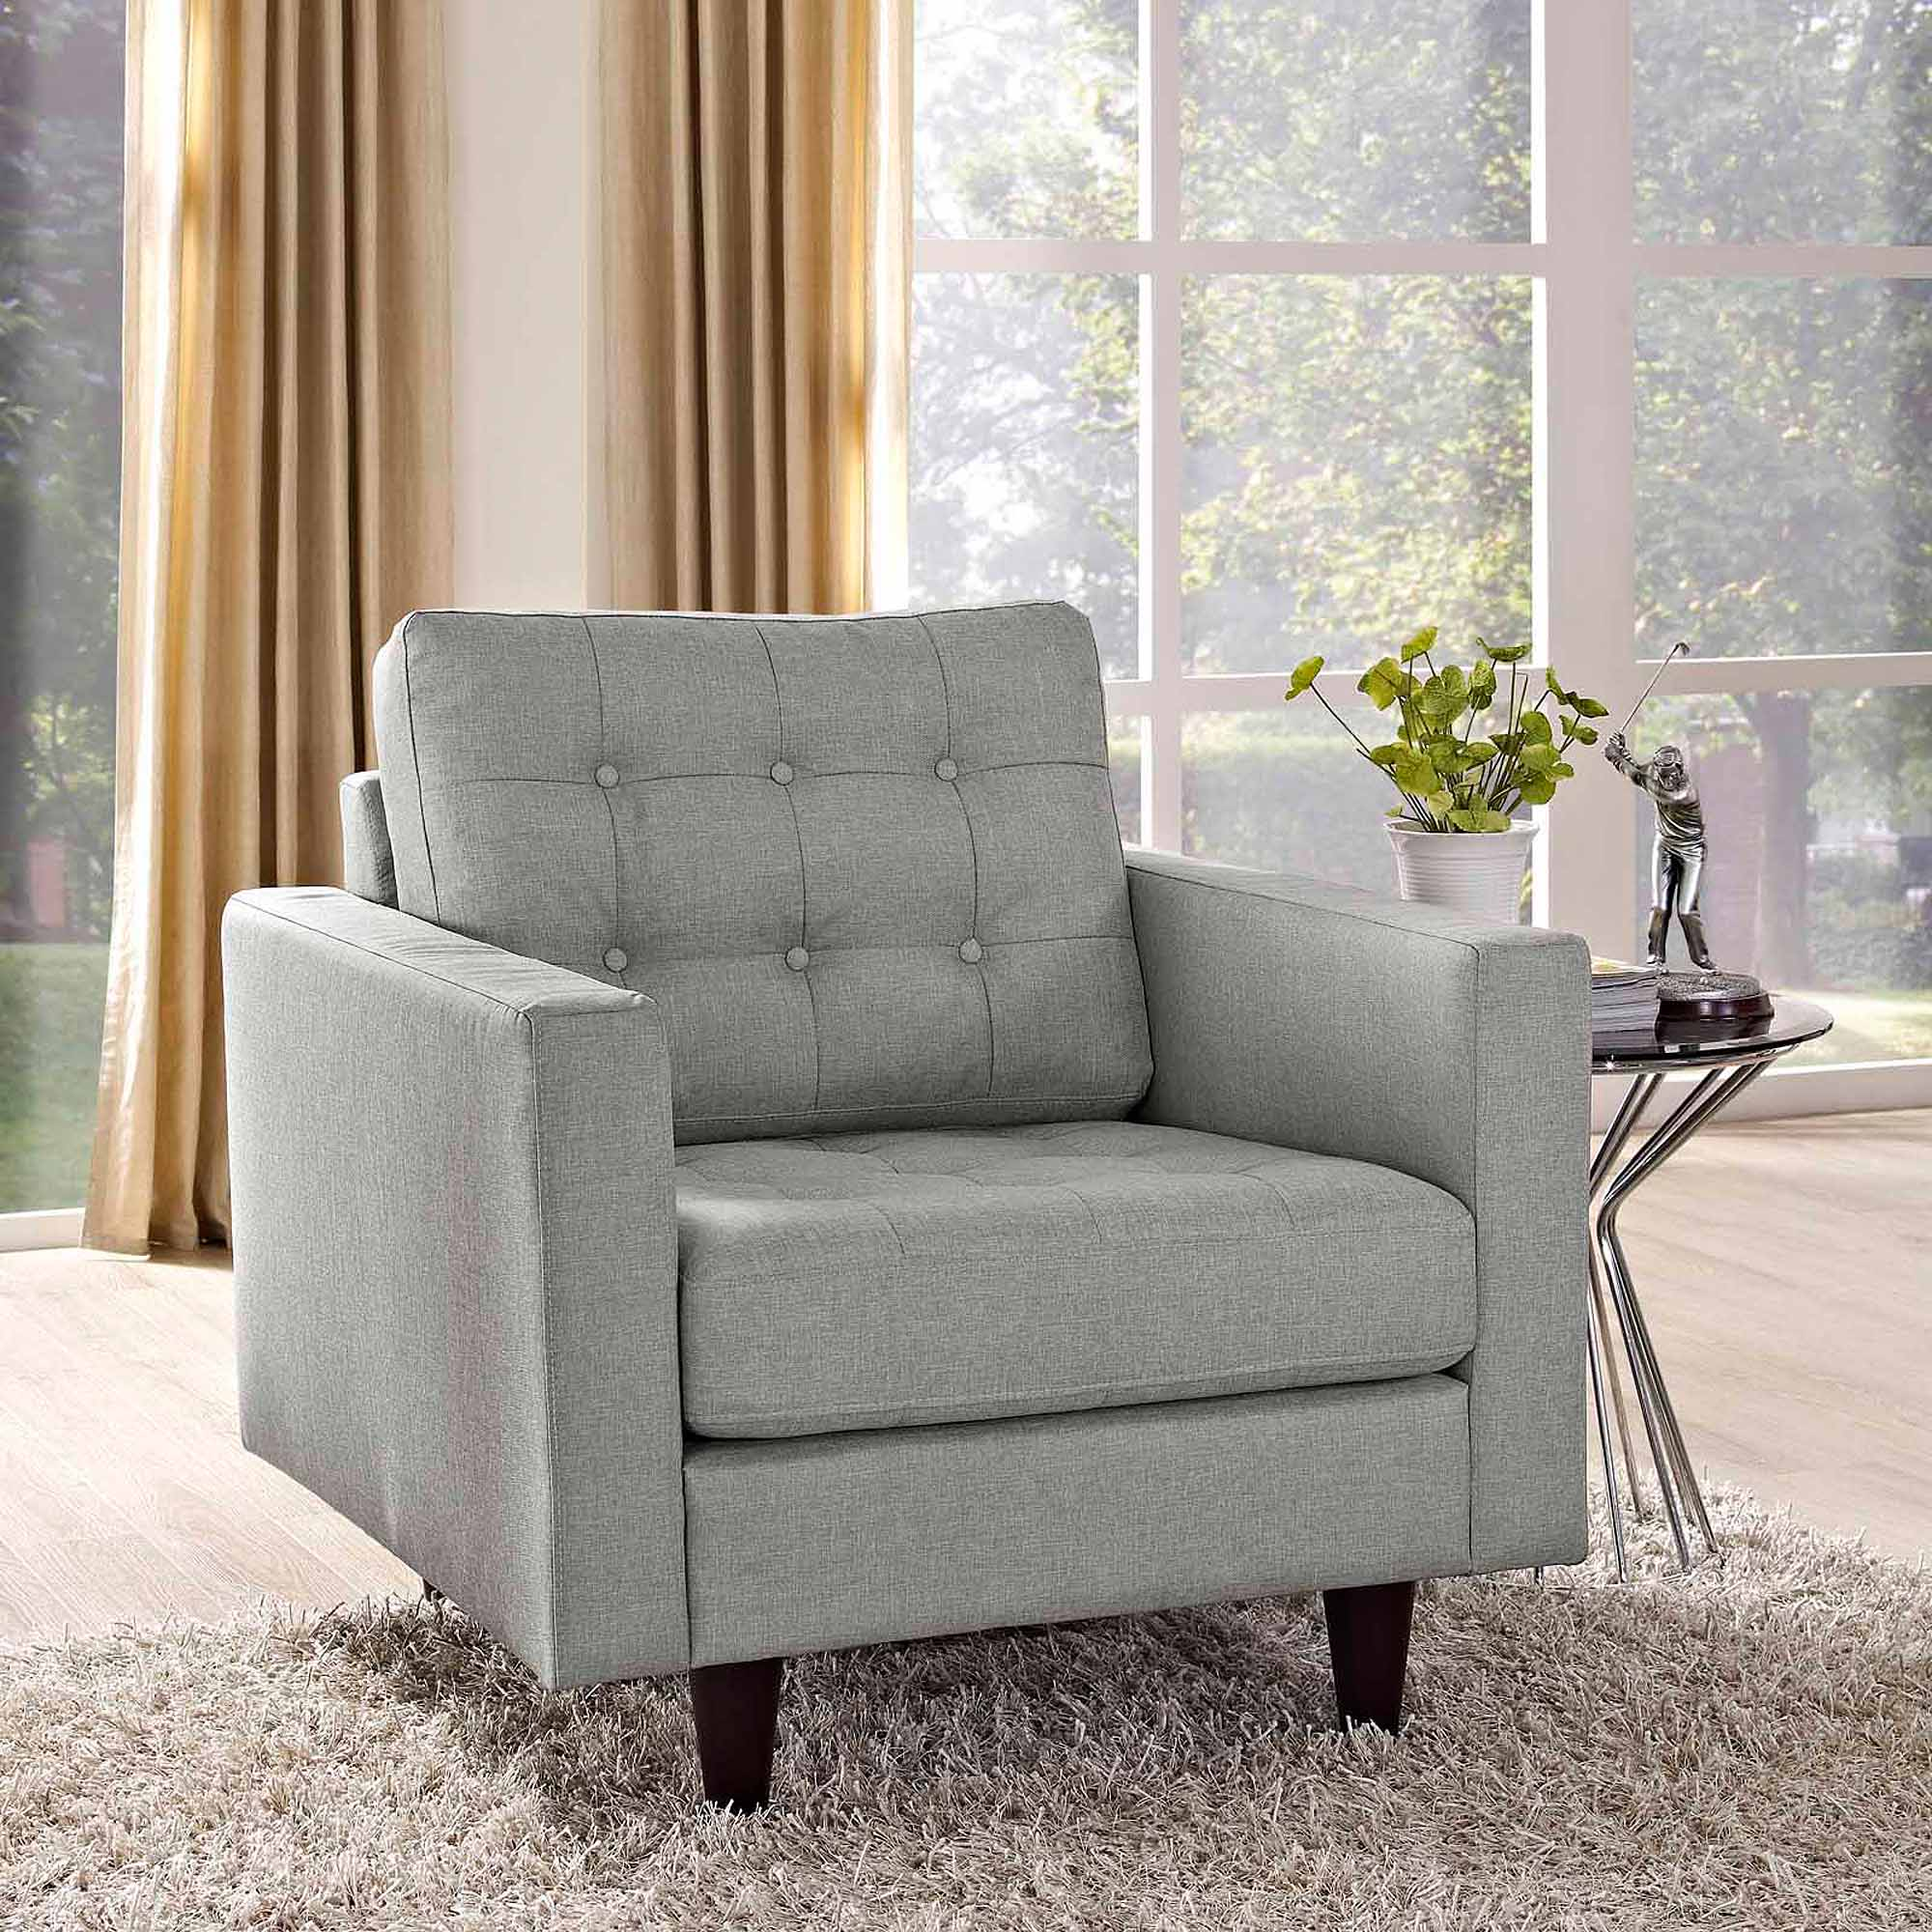 Modway Empress Upholstered Tufted Armchair, Multiple Colors   Walmart.com